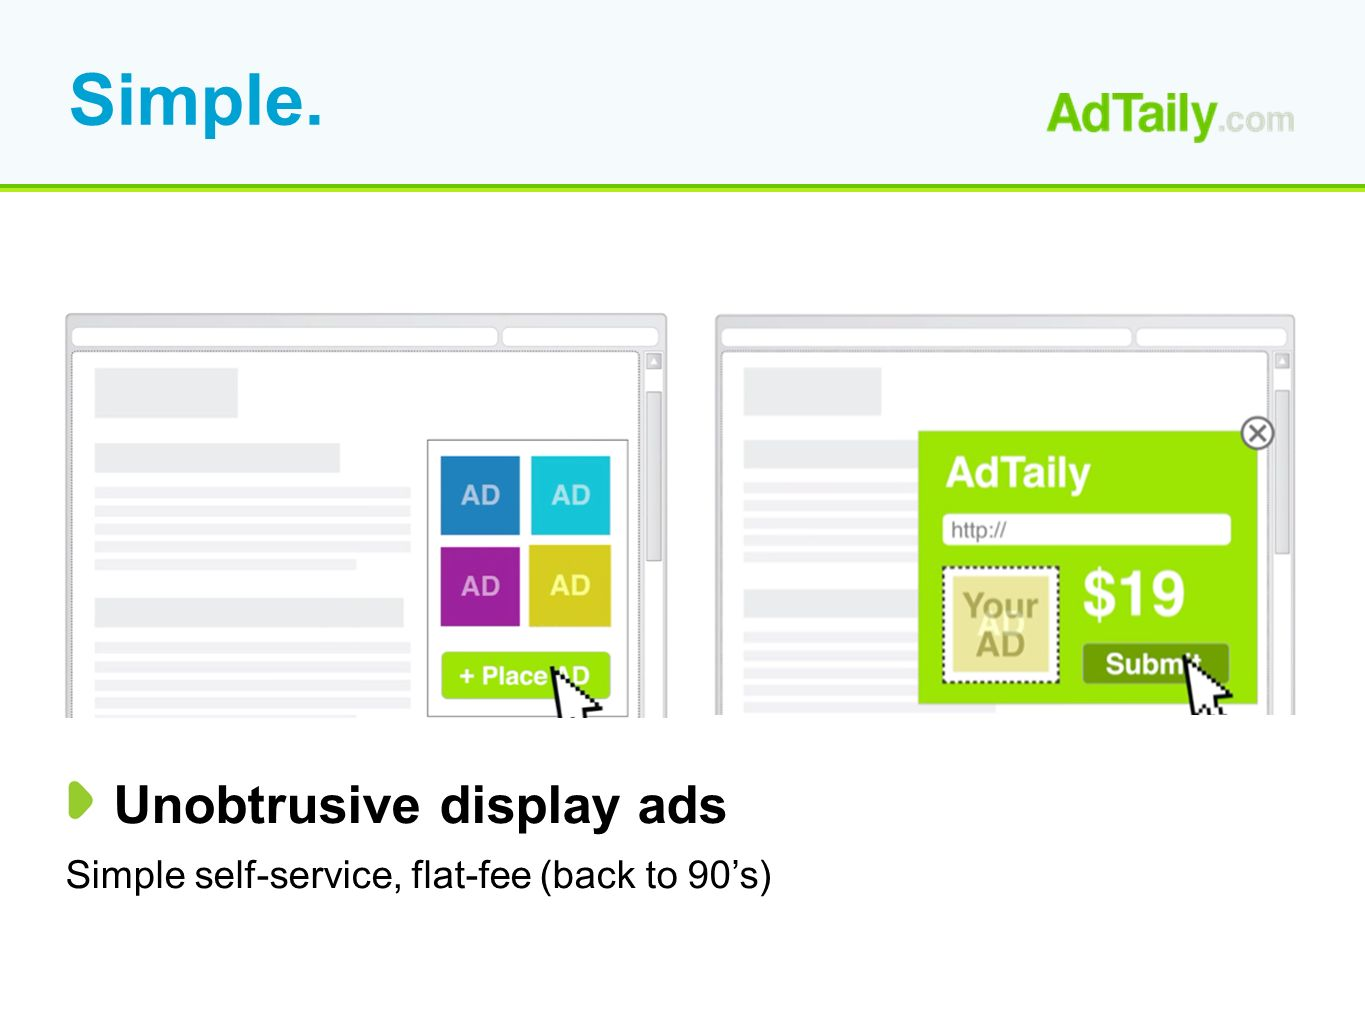 Simple. Unobtrusive display ads Simple self-service, flat-fee (back to 90s)